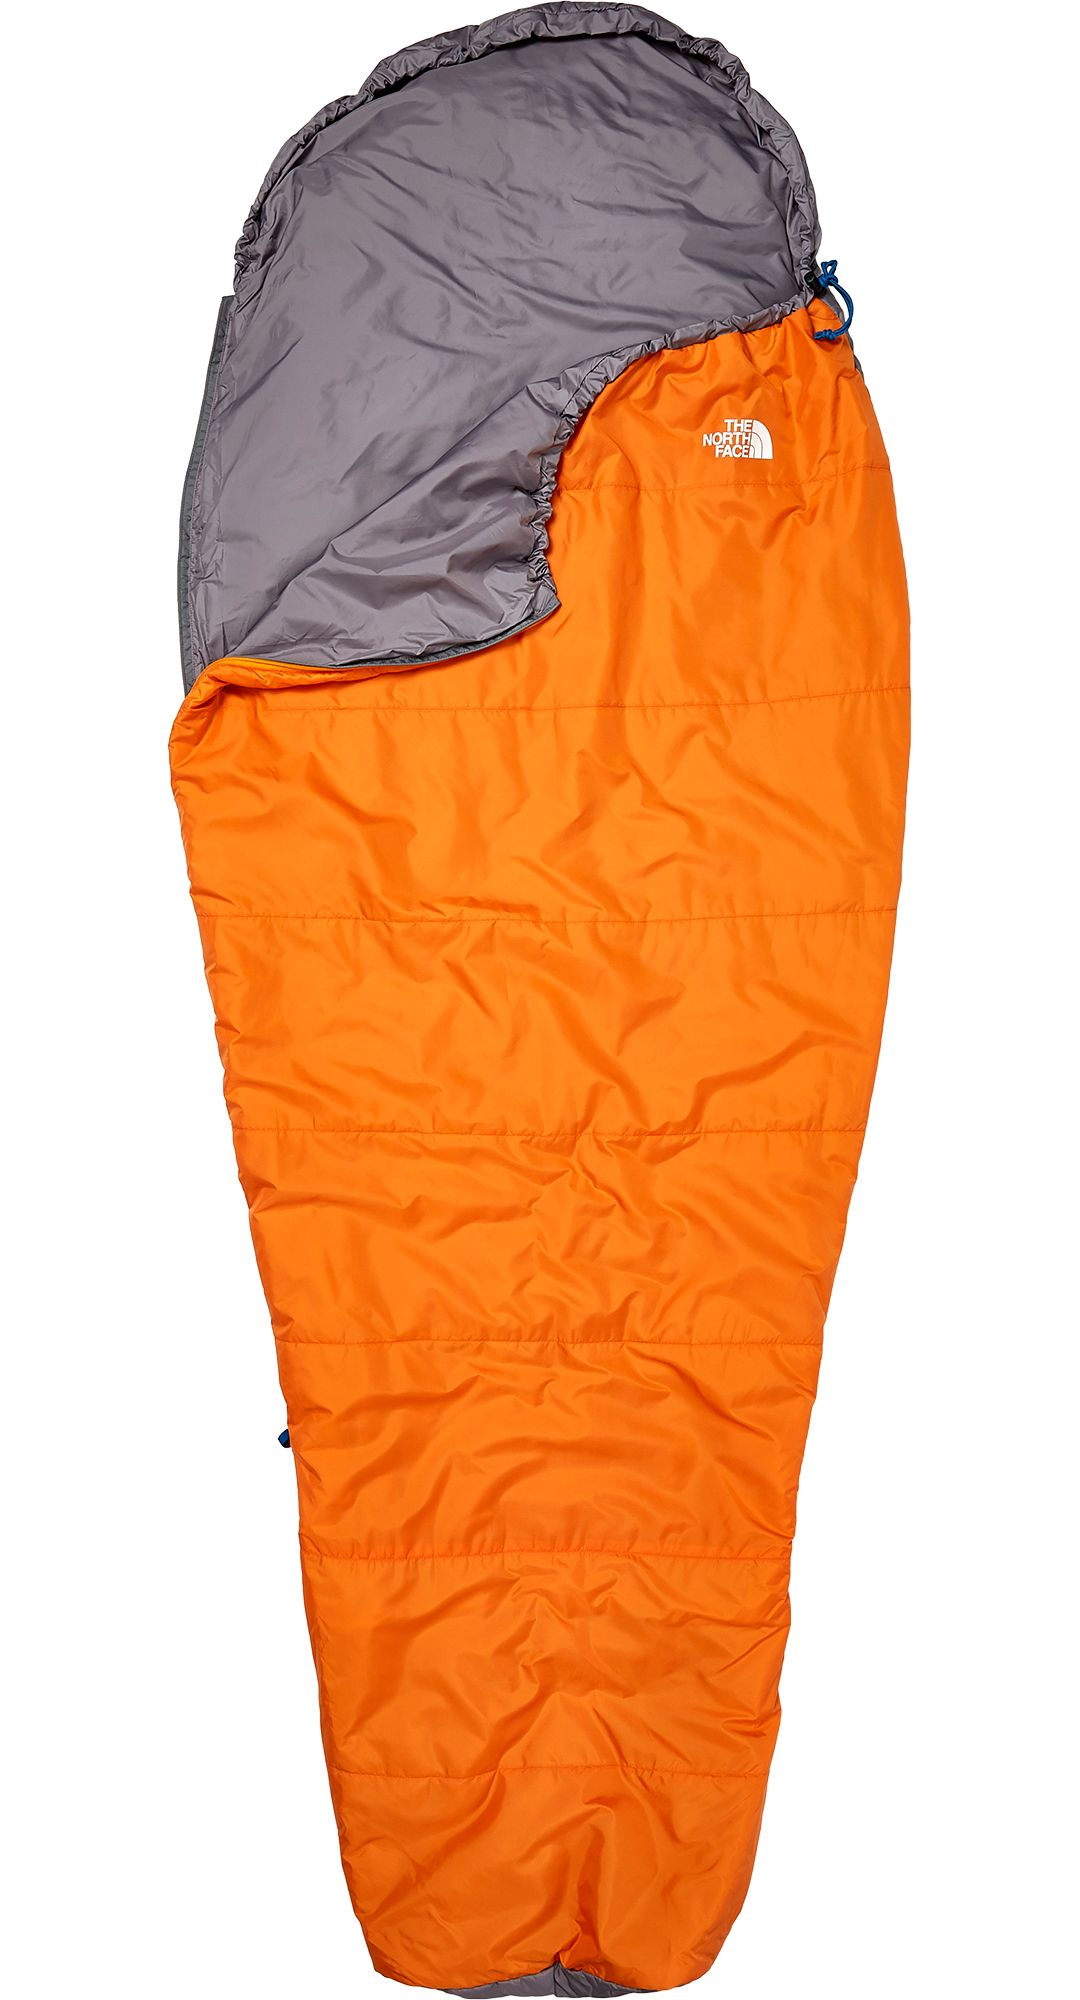 The North Face Wasatch 55 Sleeping Bag